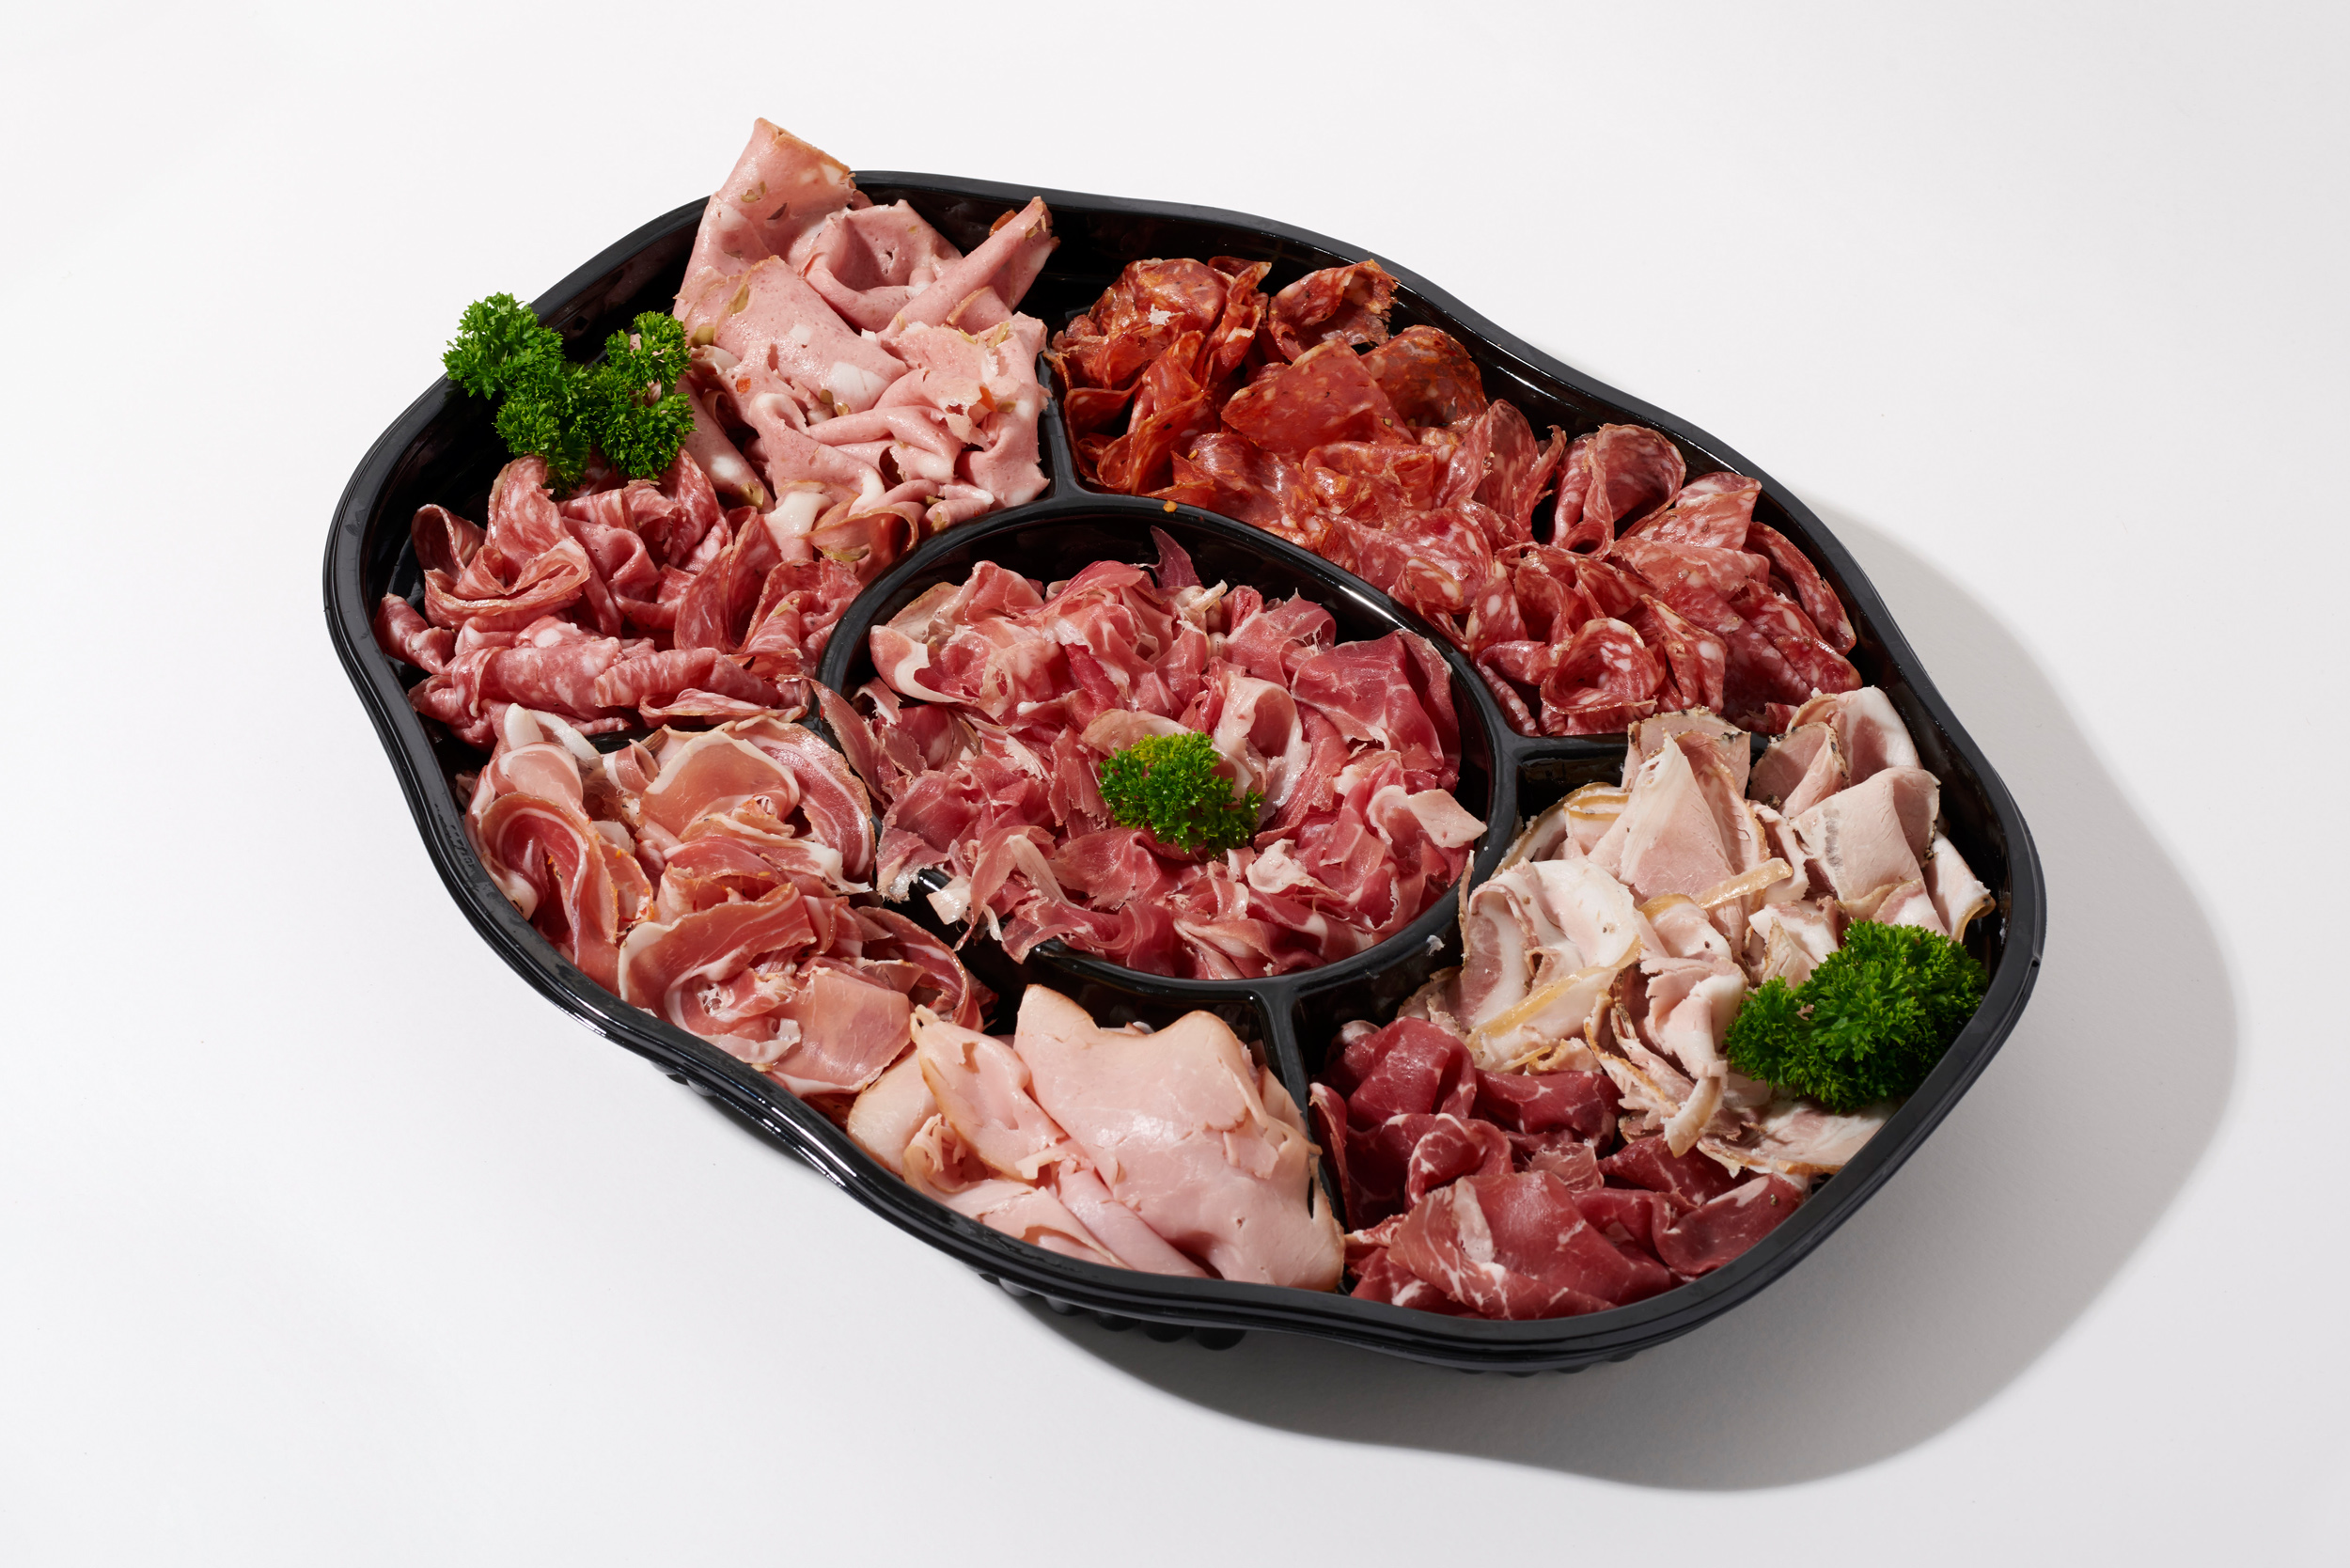 PFS_Website_Catering_Platters_01.jpg